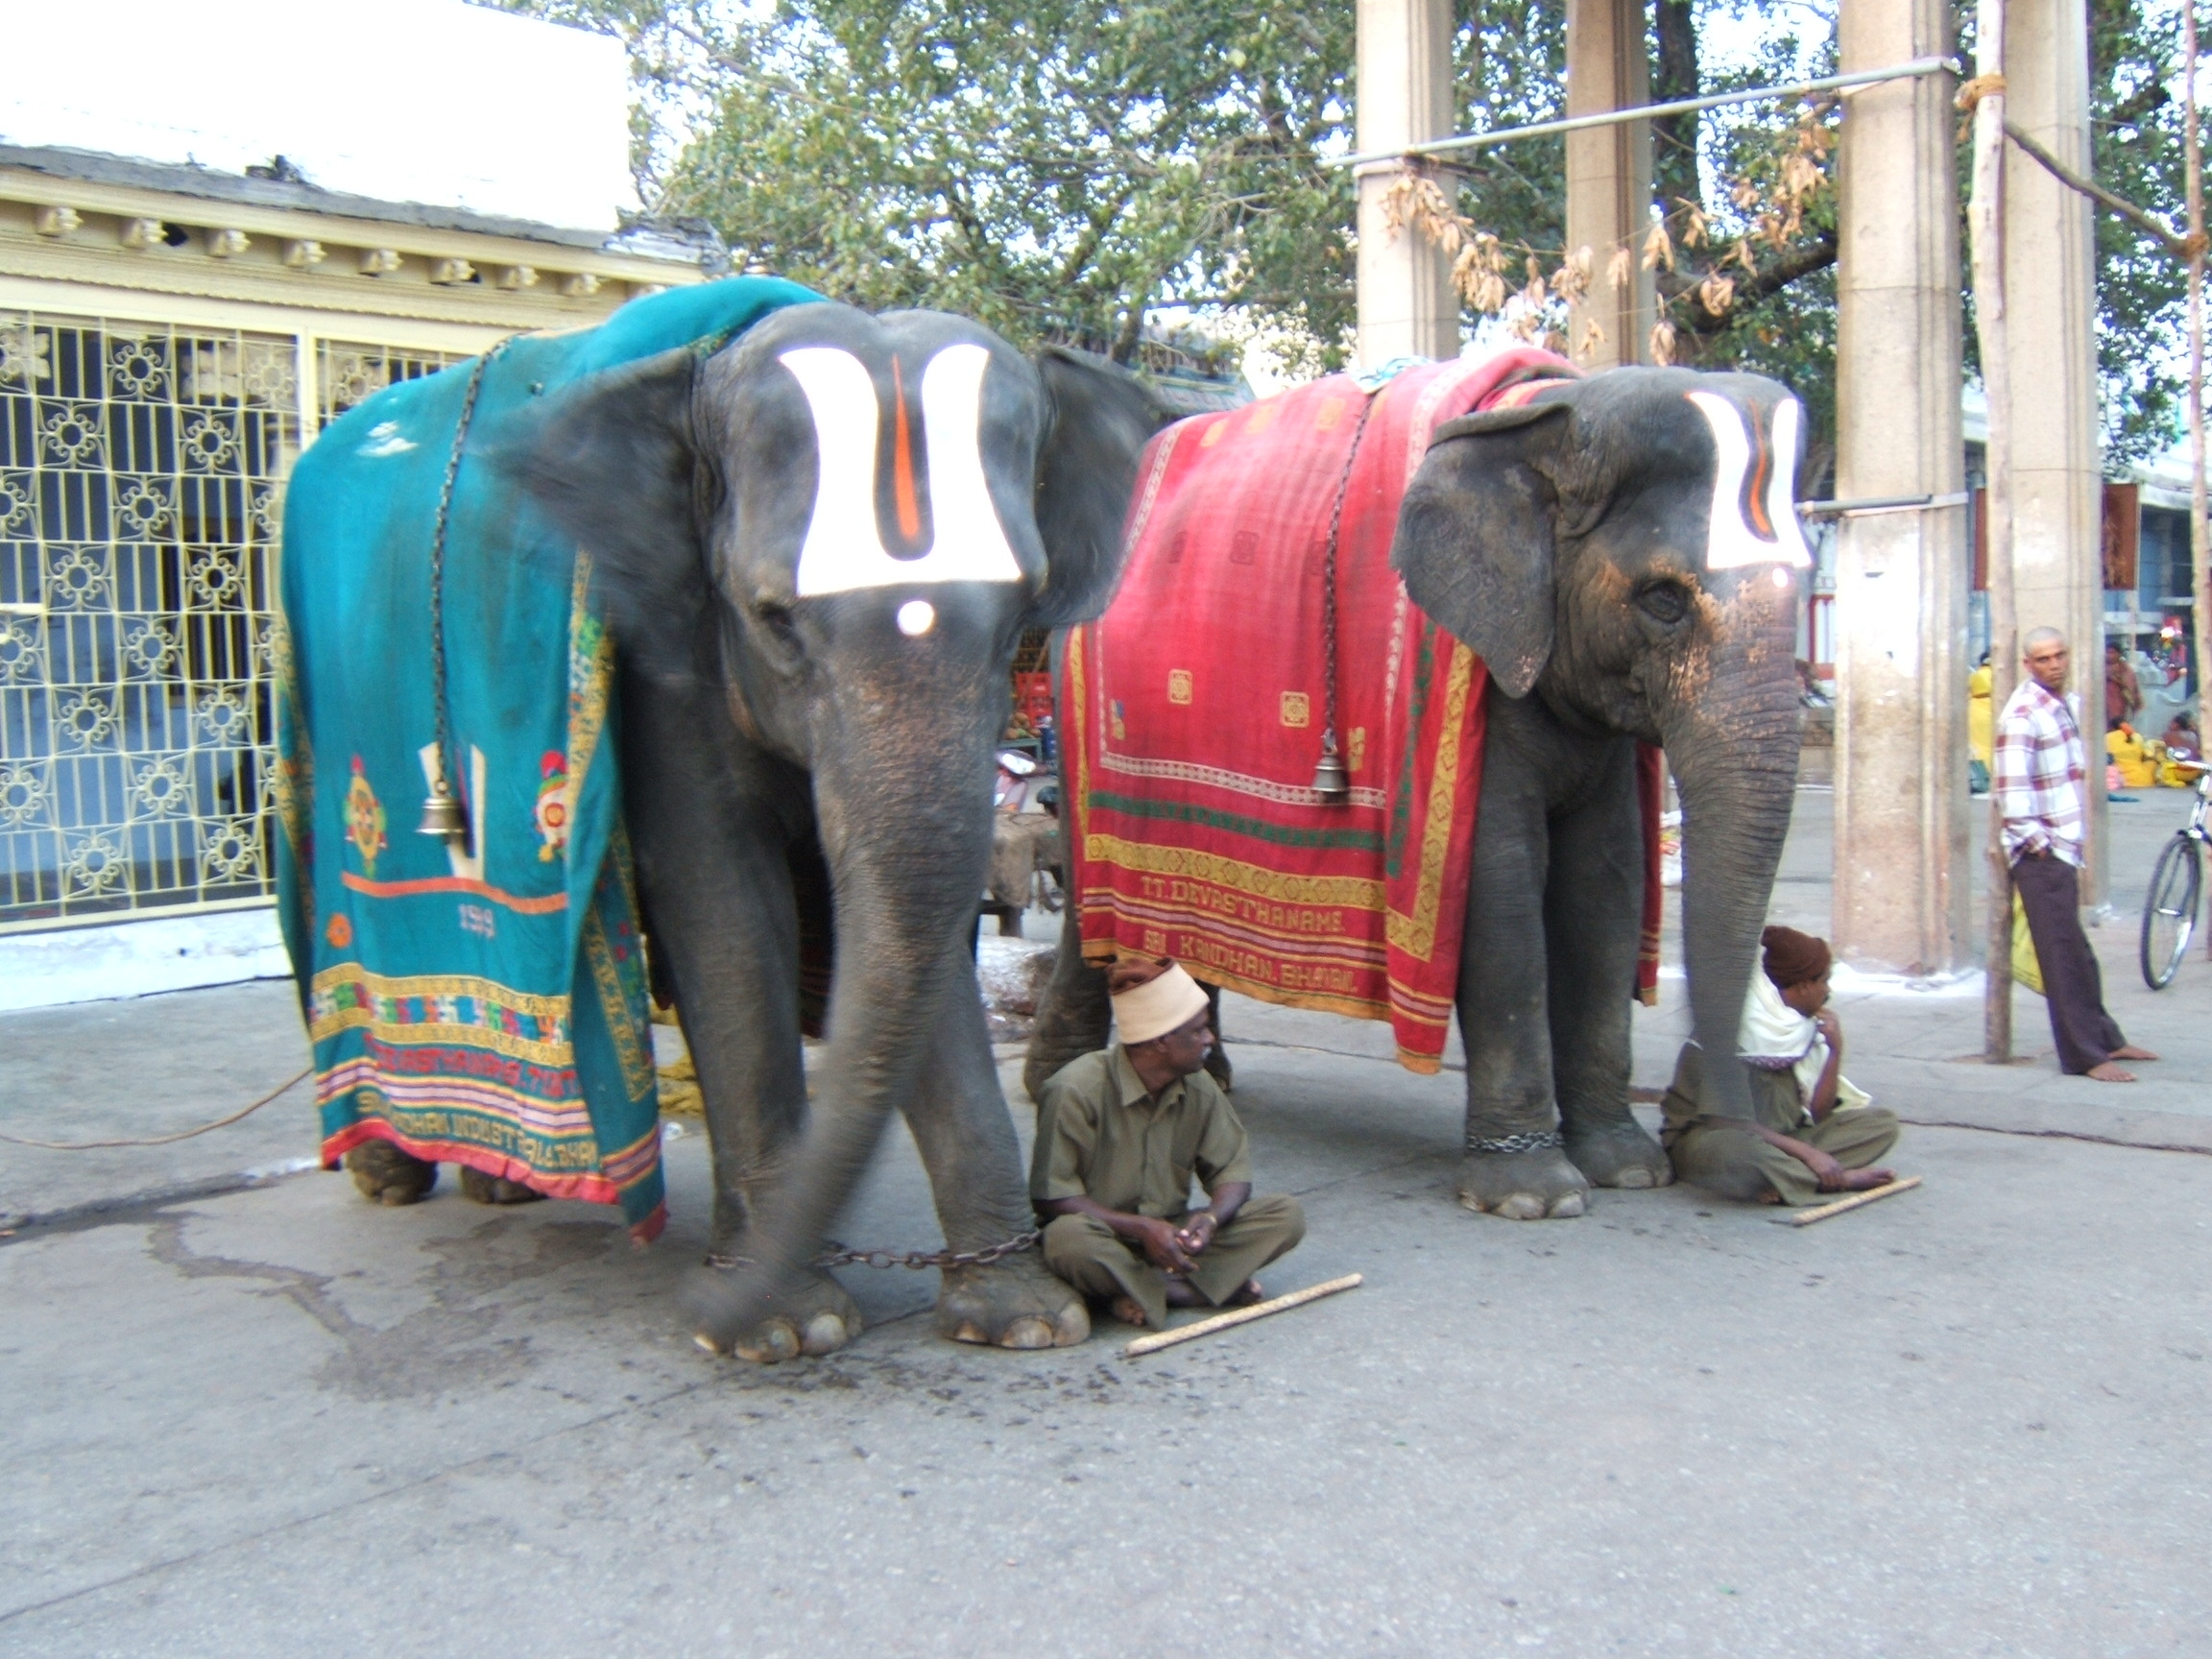 http://dic.academic.ru/pictures/wiki/files/84/Temple_elephants_Tirupati_India.JPG